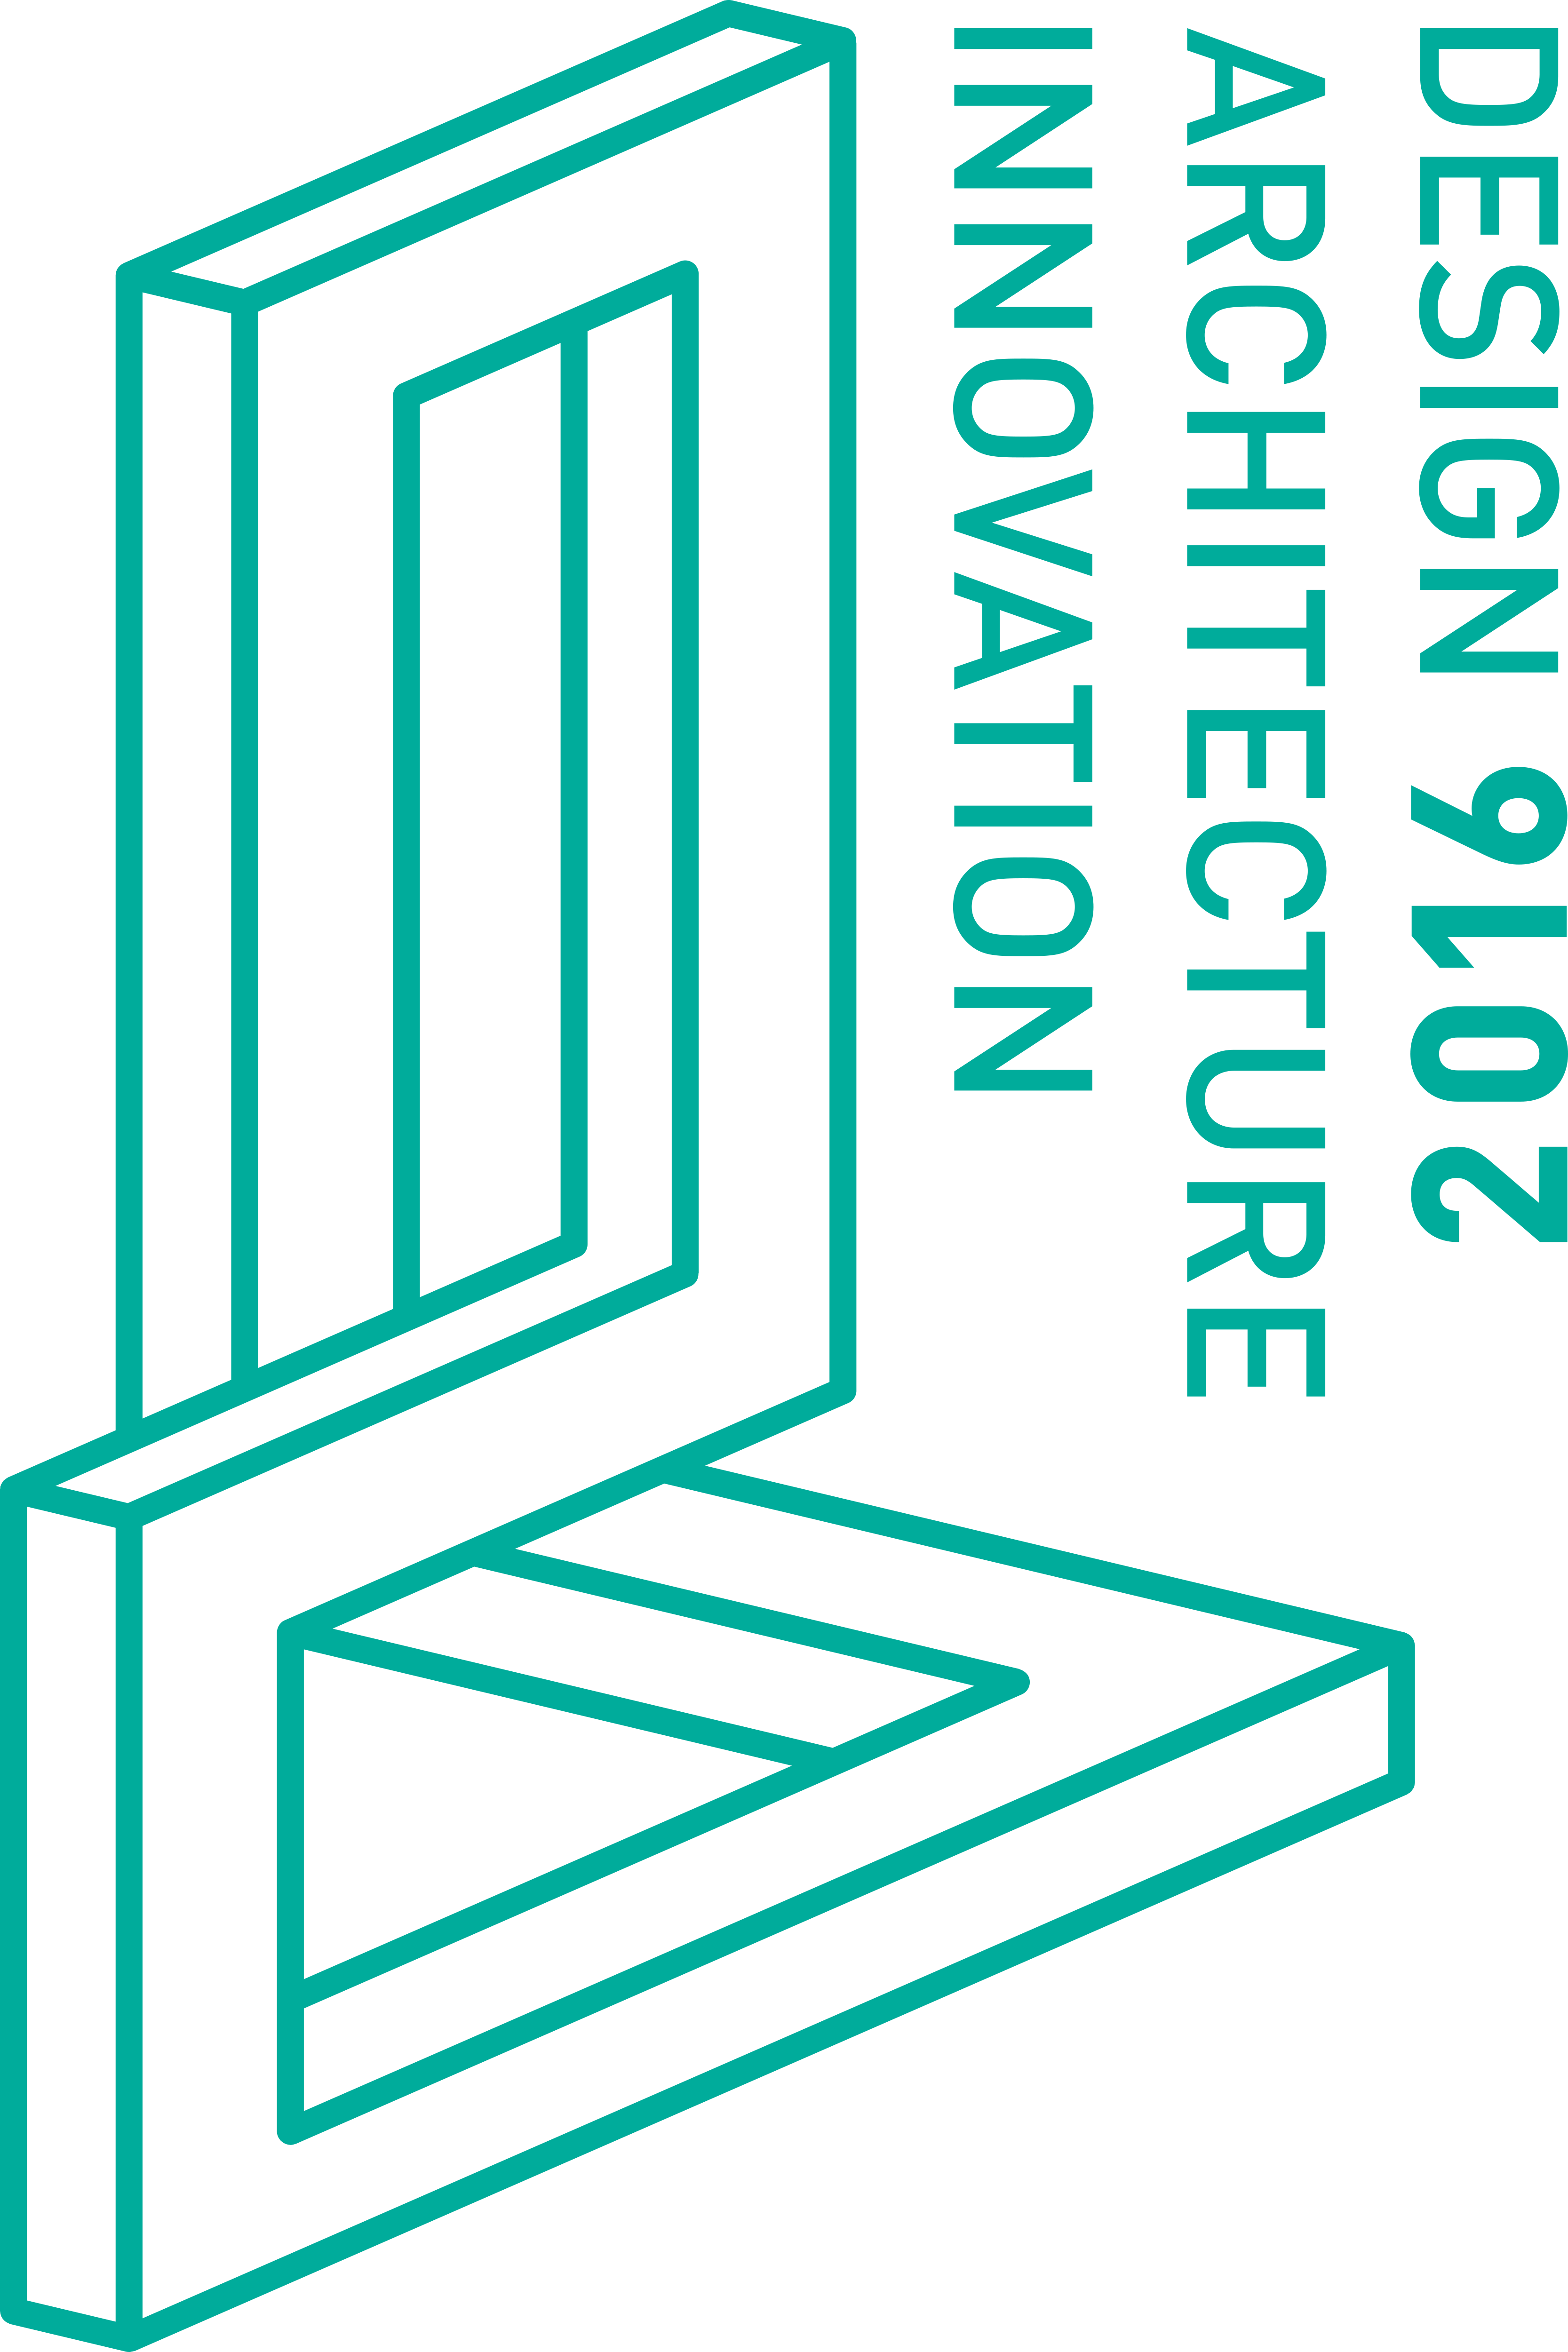 Year of Architecture Innovation & Design logo